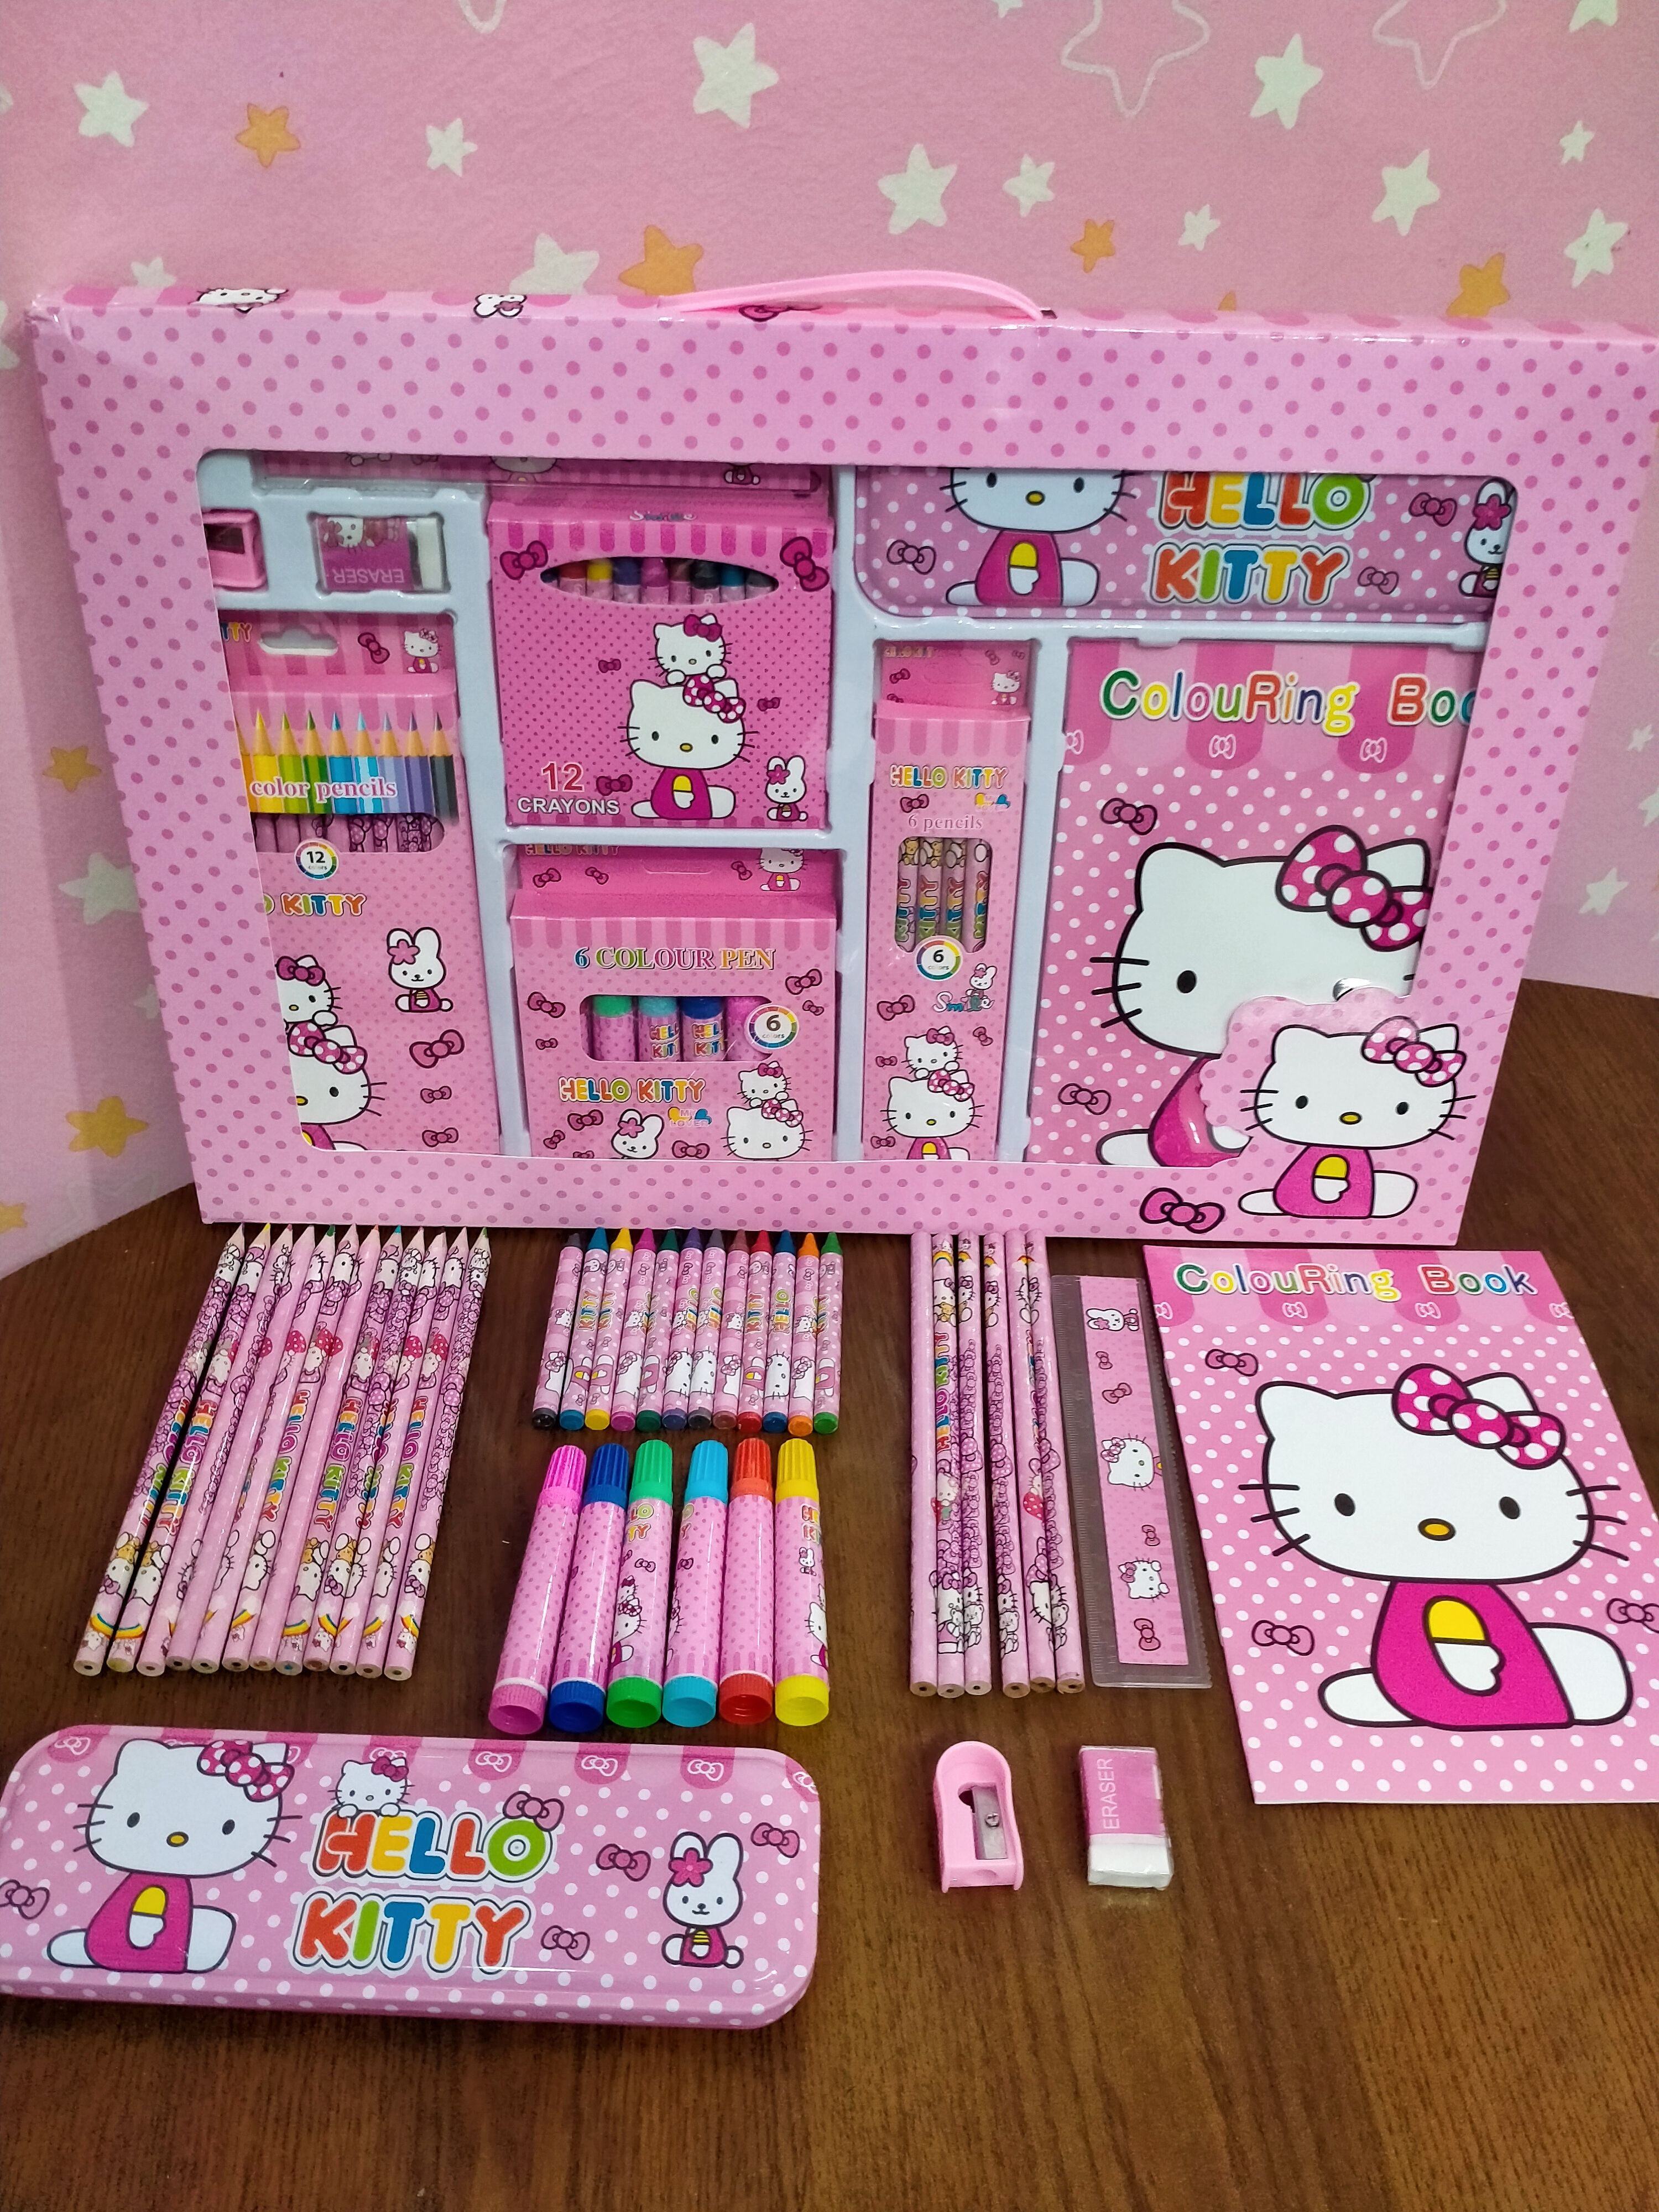 High Quality School Stationary Set For Your Kids Id S002013 In 2020 Stationary School Kids Stationary Stationary Set